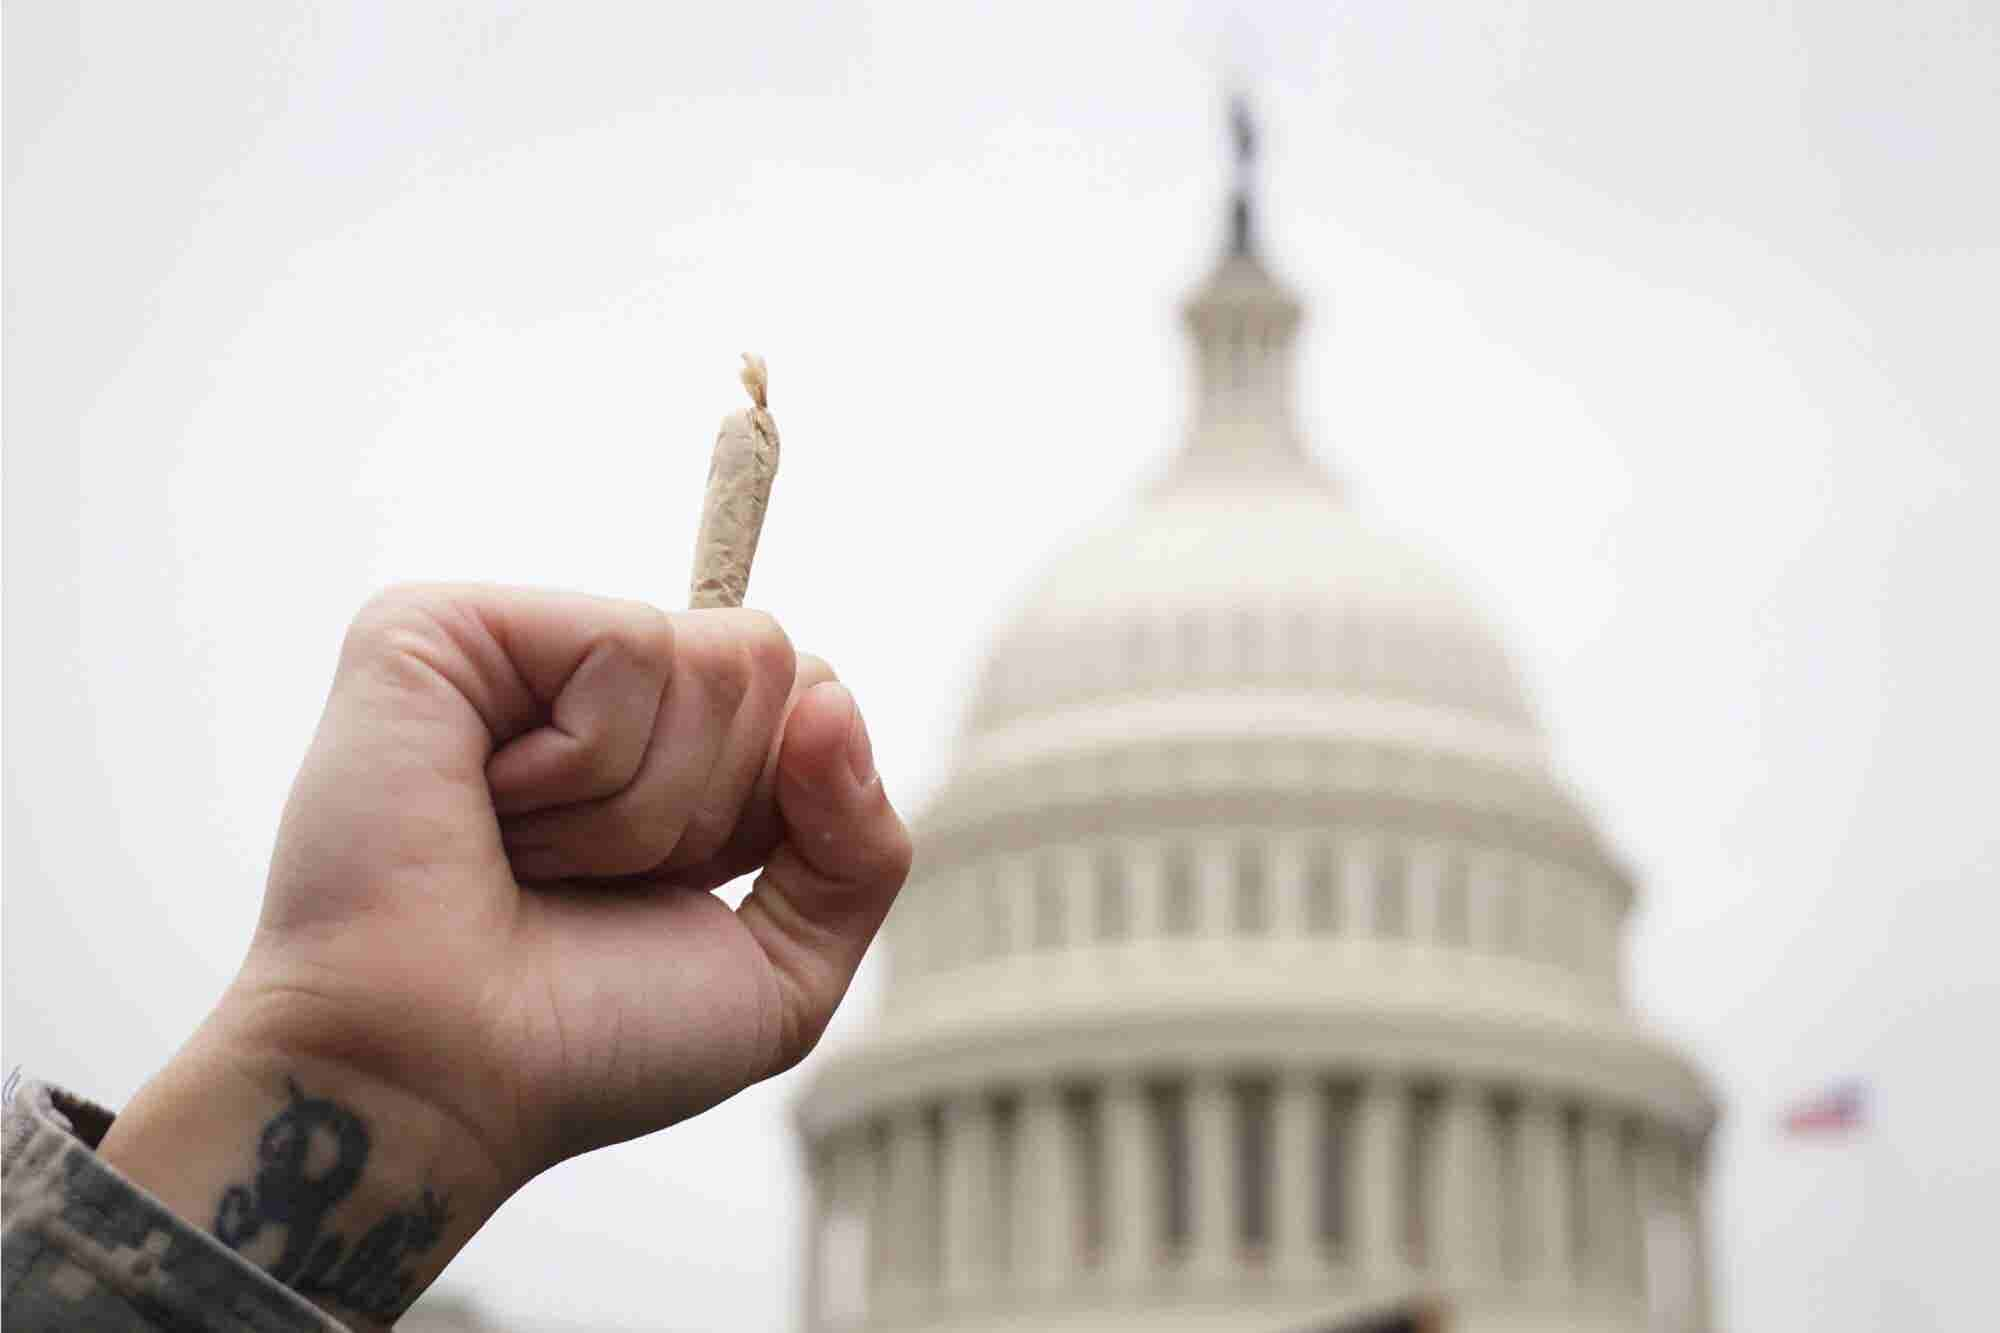 New Poll Finds Highest Support Ever for Weed Legalization